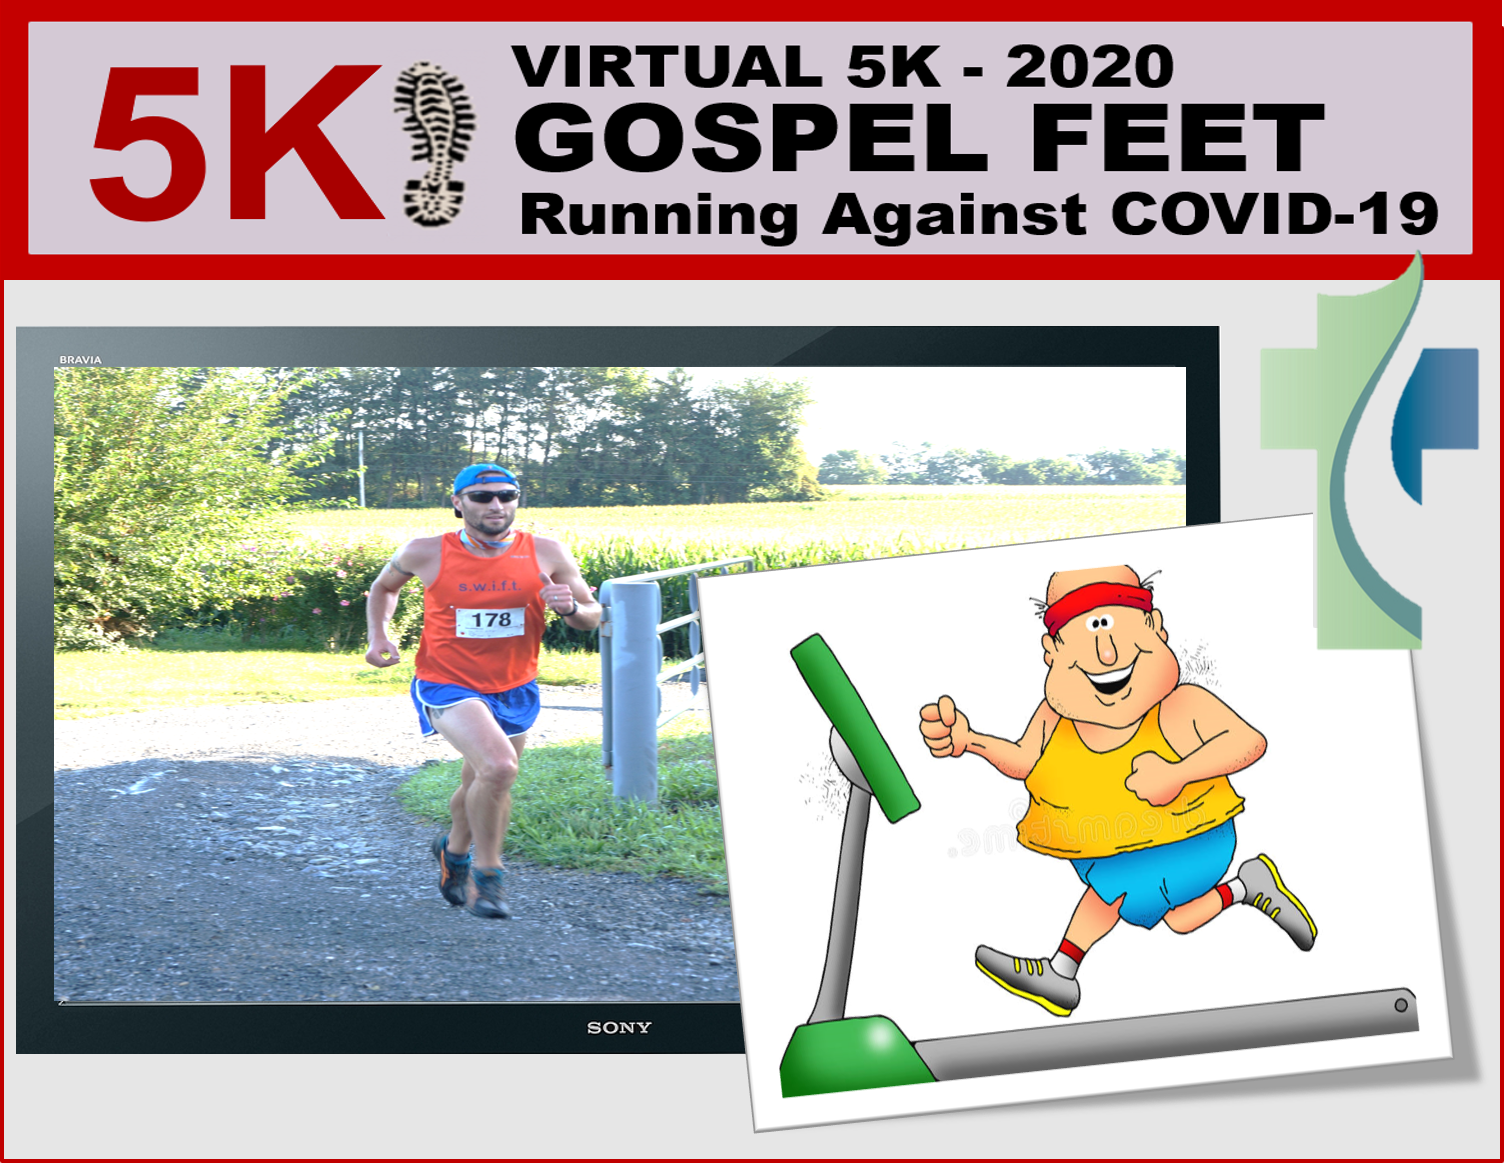 Thumbnail for the post titled: 2020 Gospel Feet 5K On, Virtually!